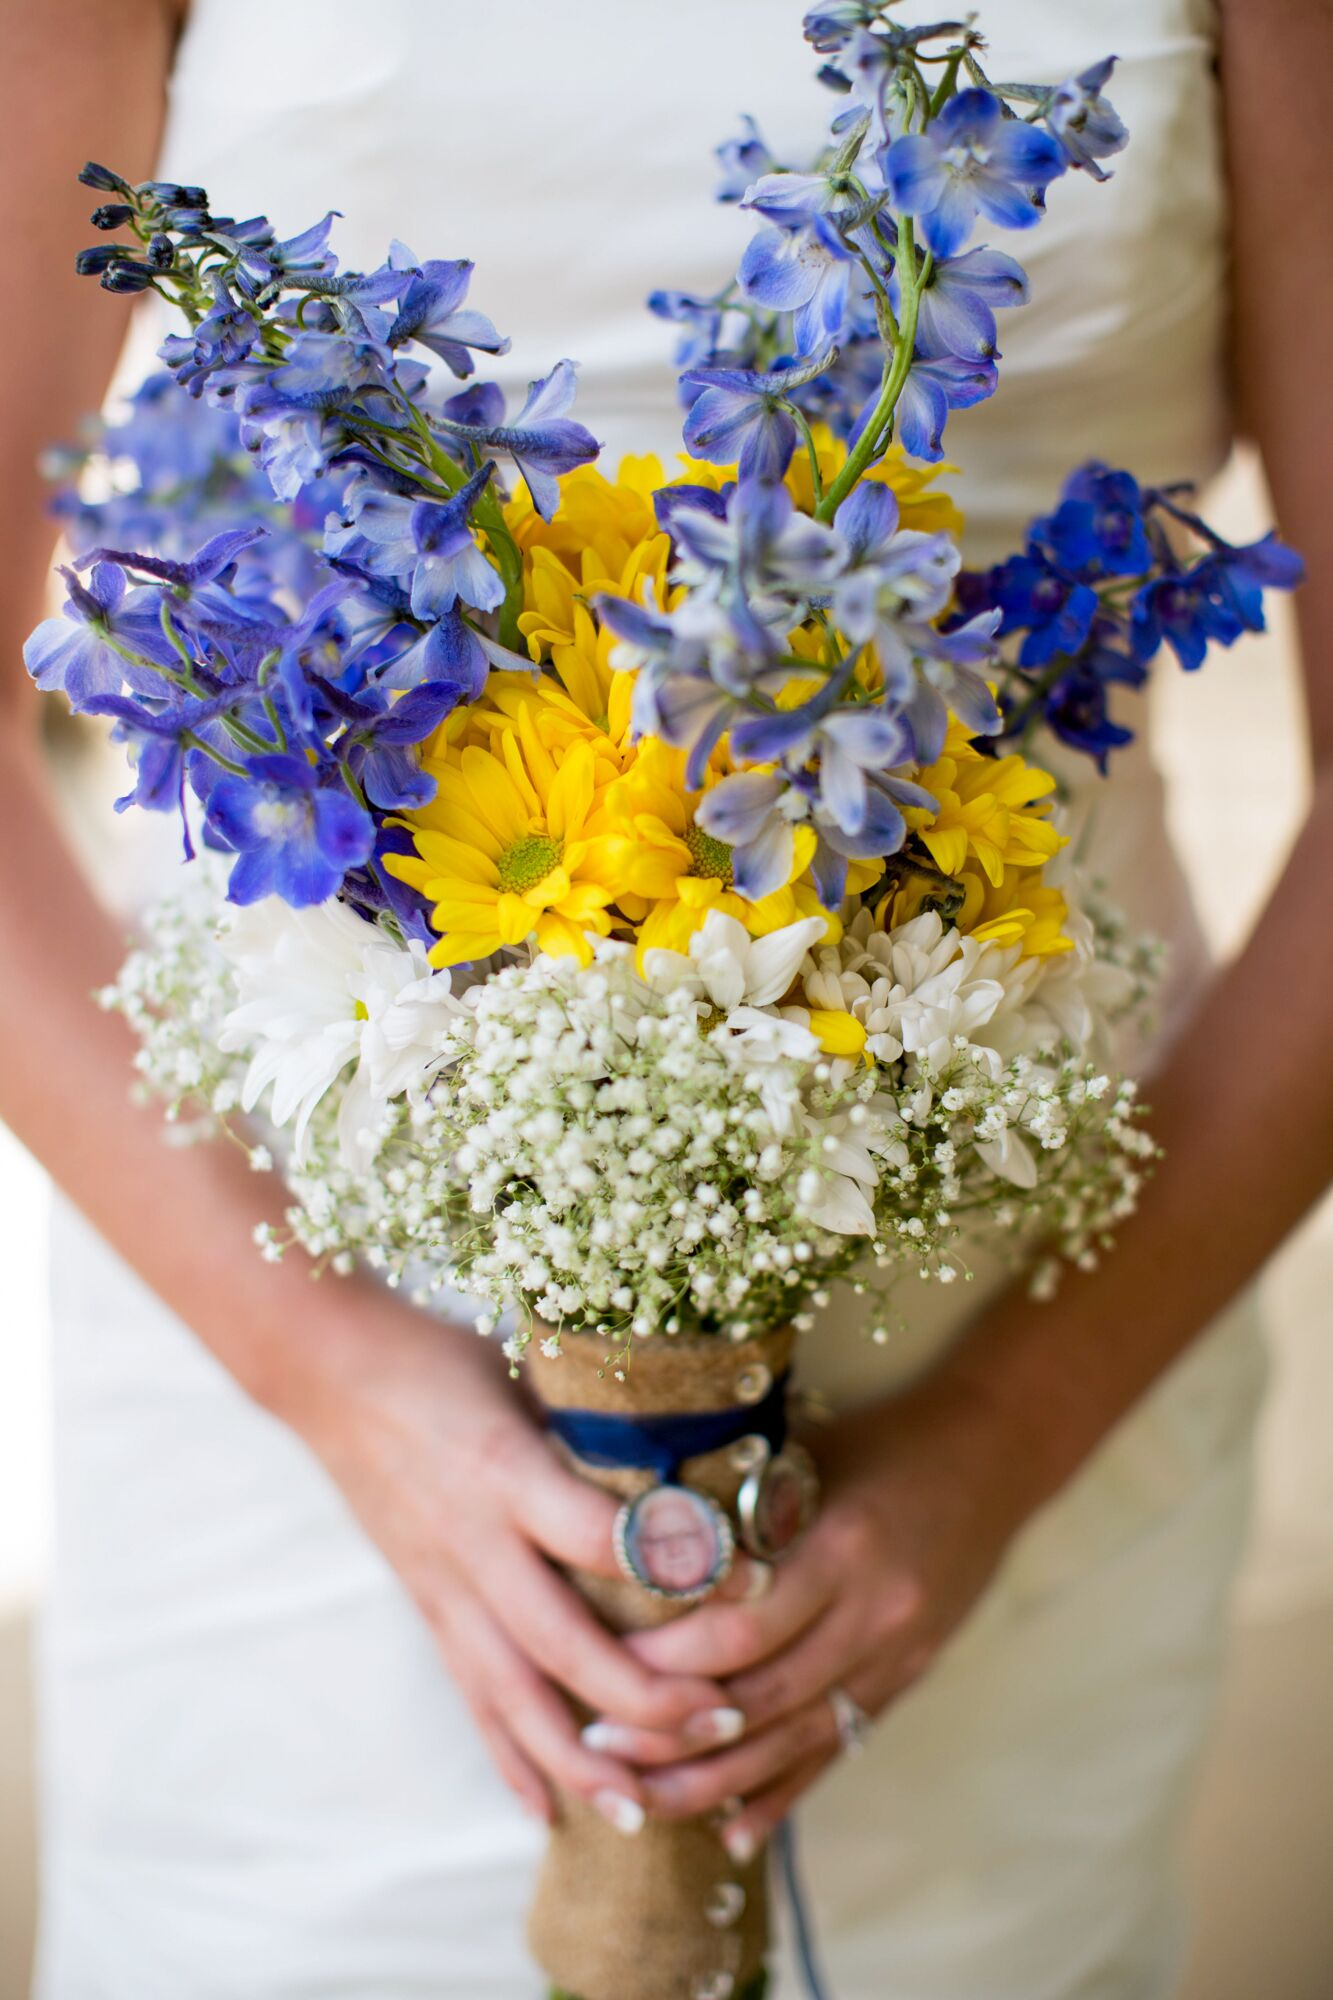 Baby Girl Room: Bouquet Of Delphiniums, Daisies And Baby's Breath